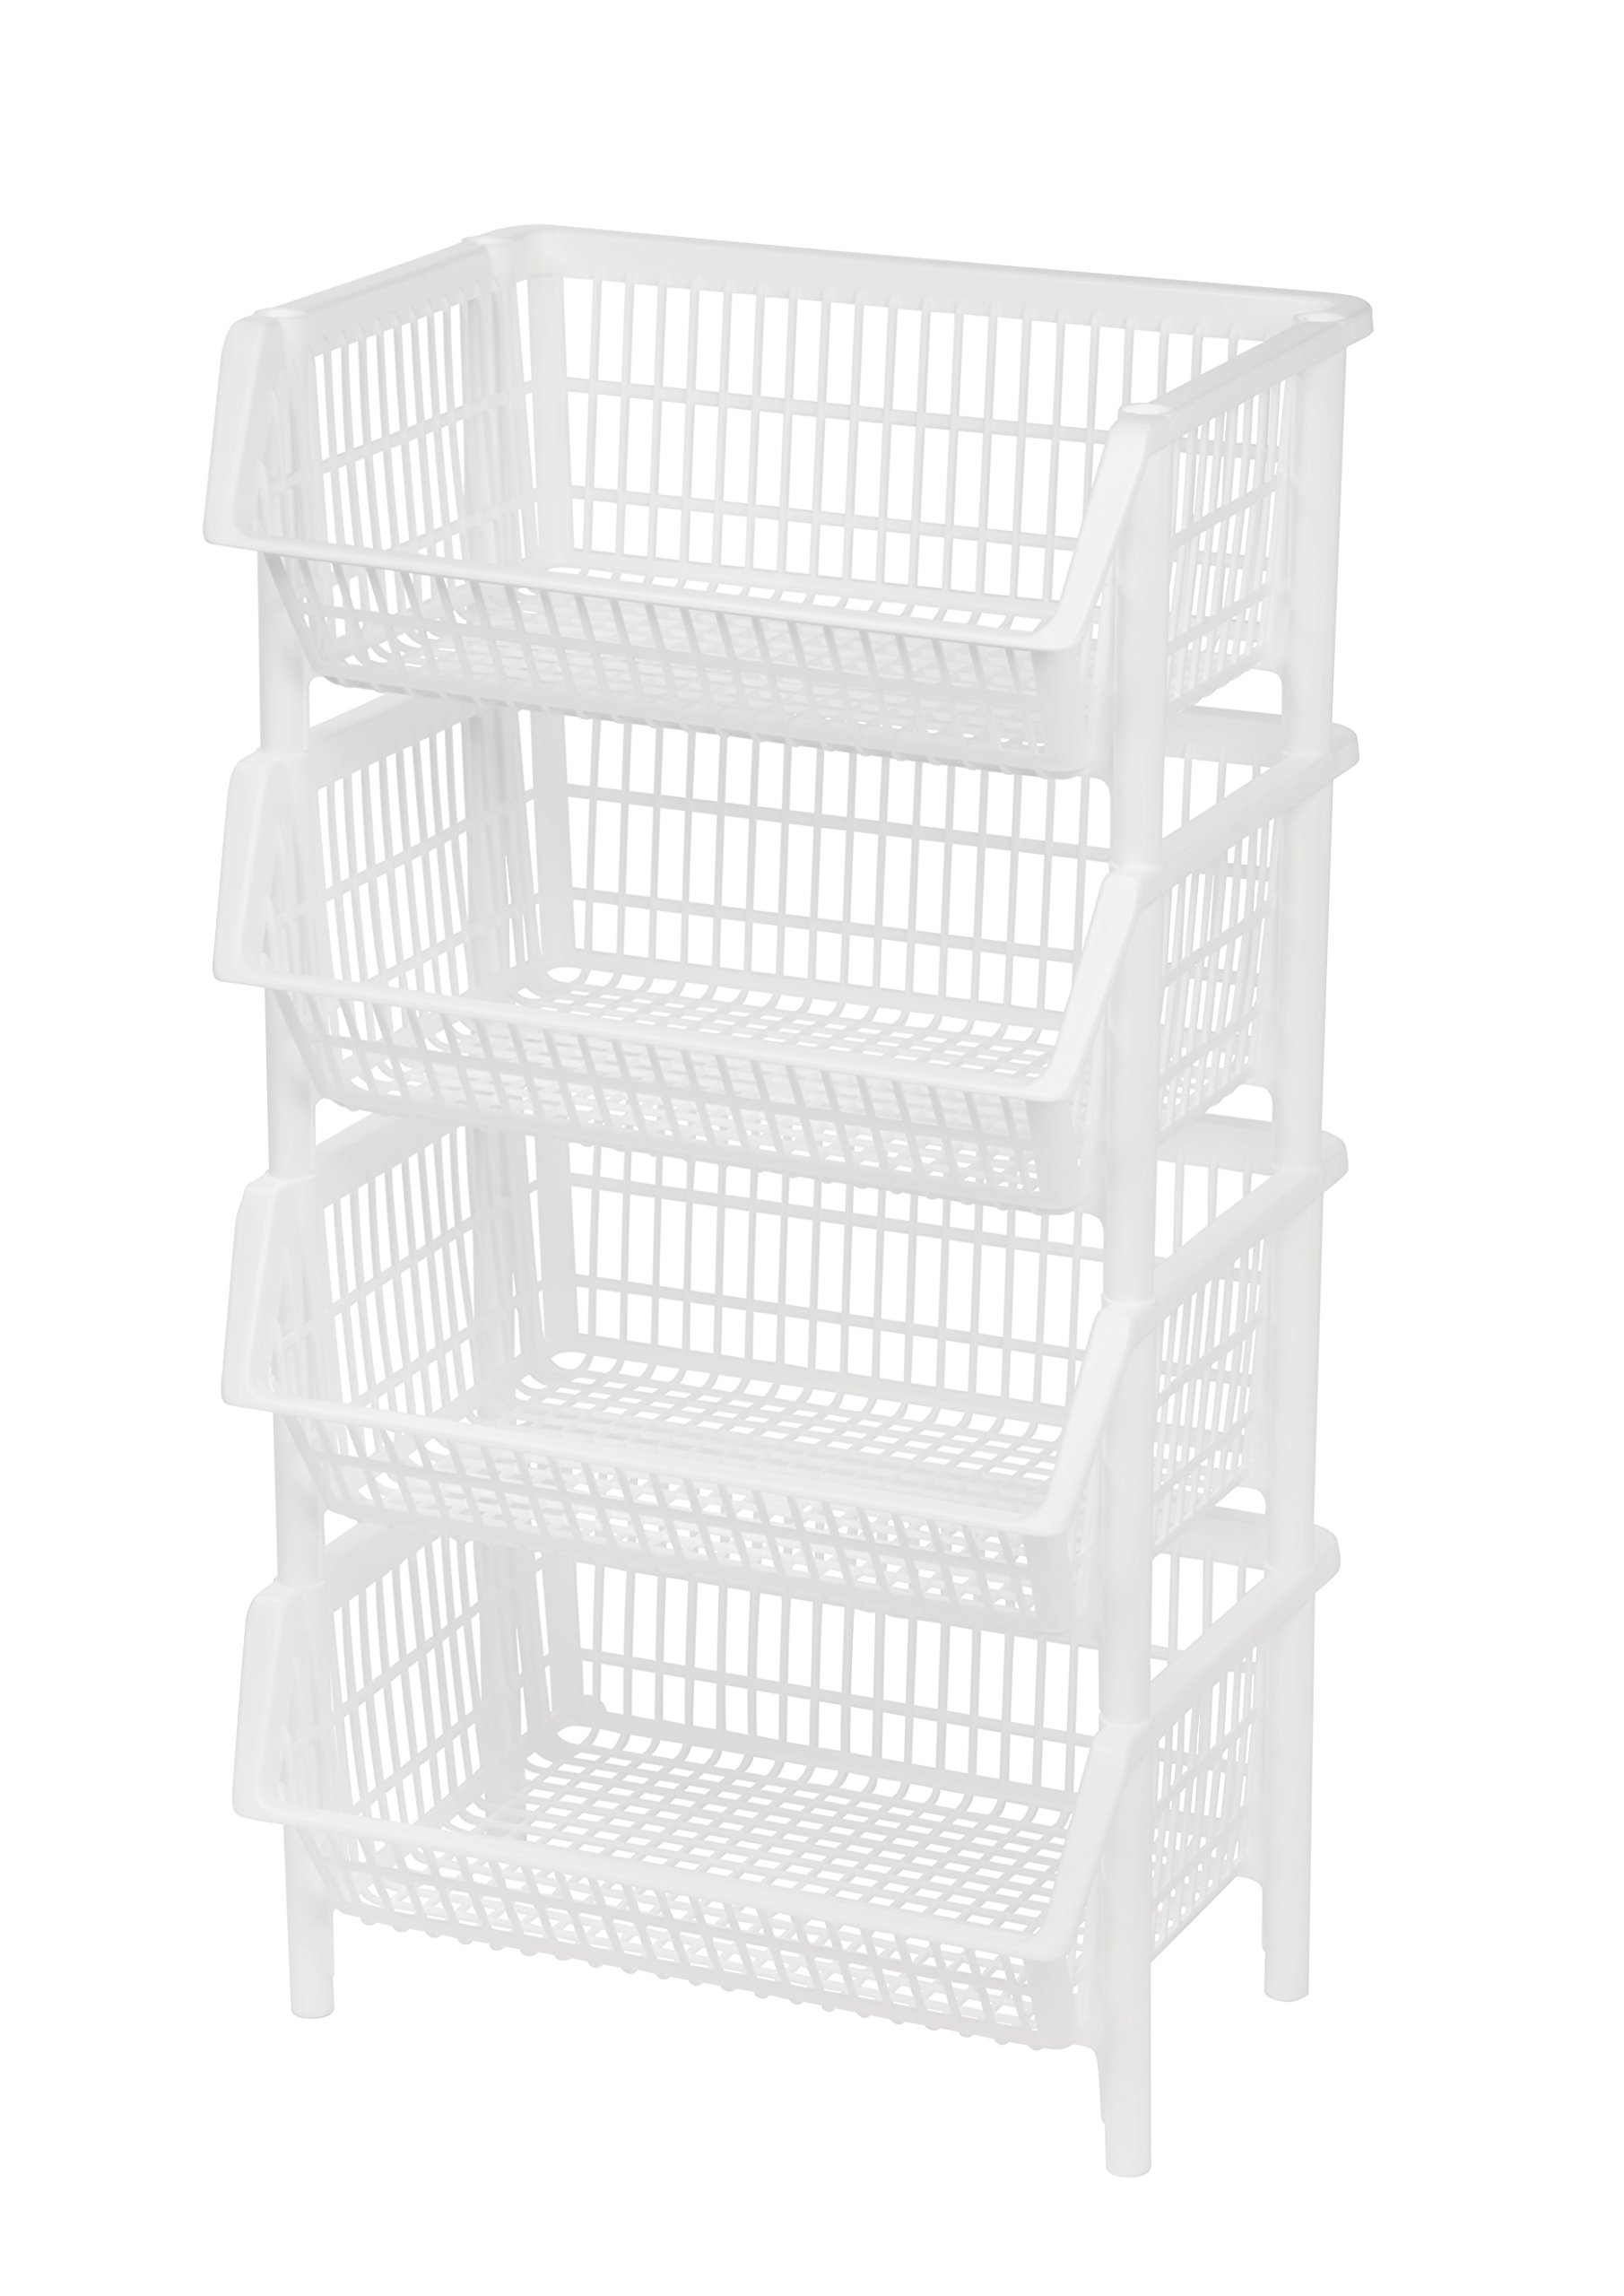 Jumbo Stacking Basket, 4 Pack, White